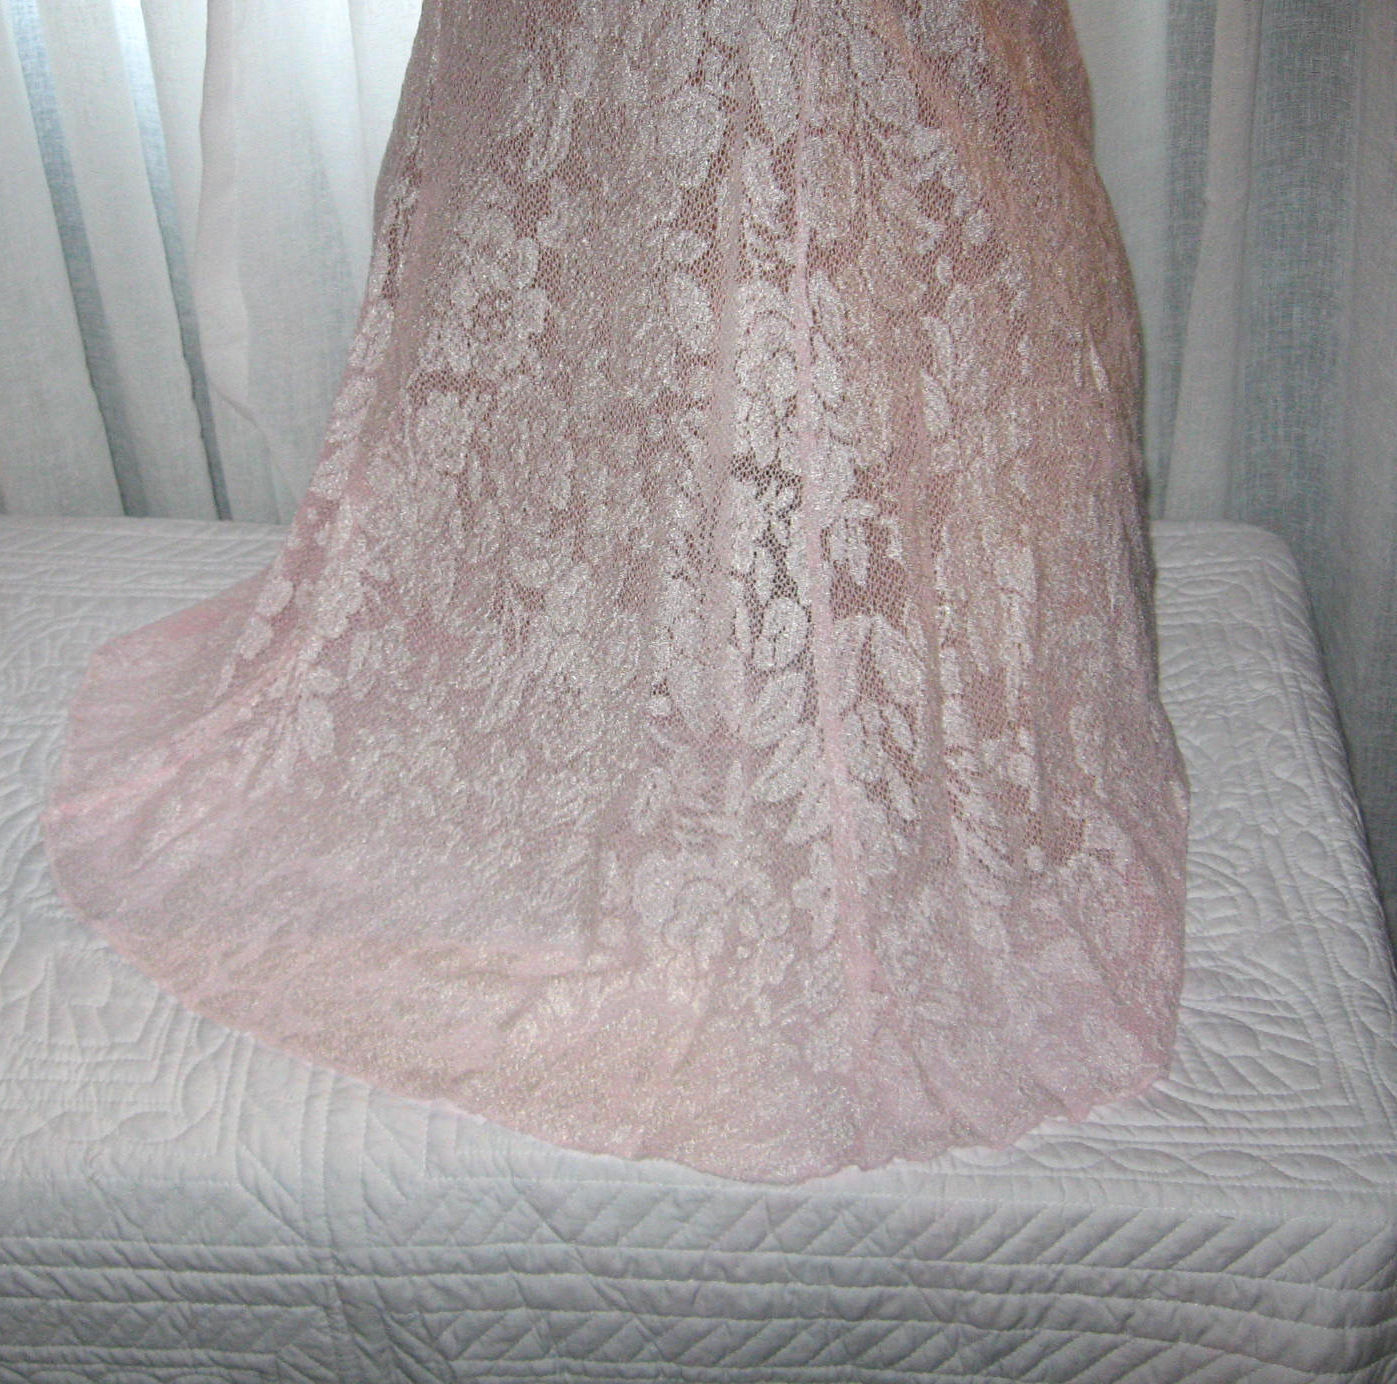 Stretch Lace Nightgown Slip Chemise 1X Pink White Lace Short Gown